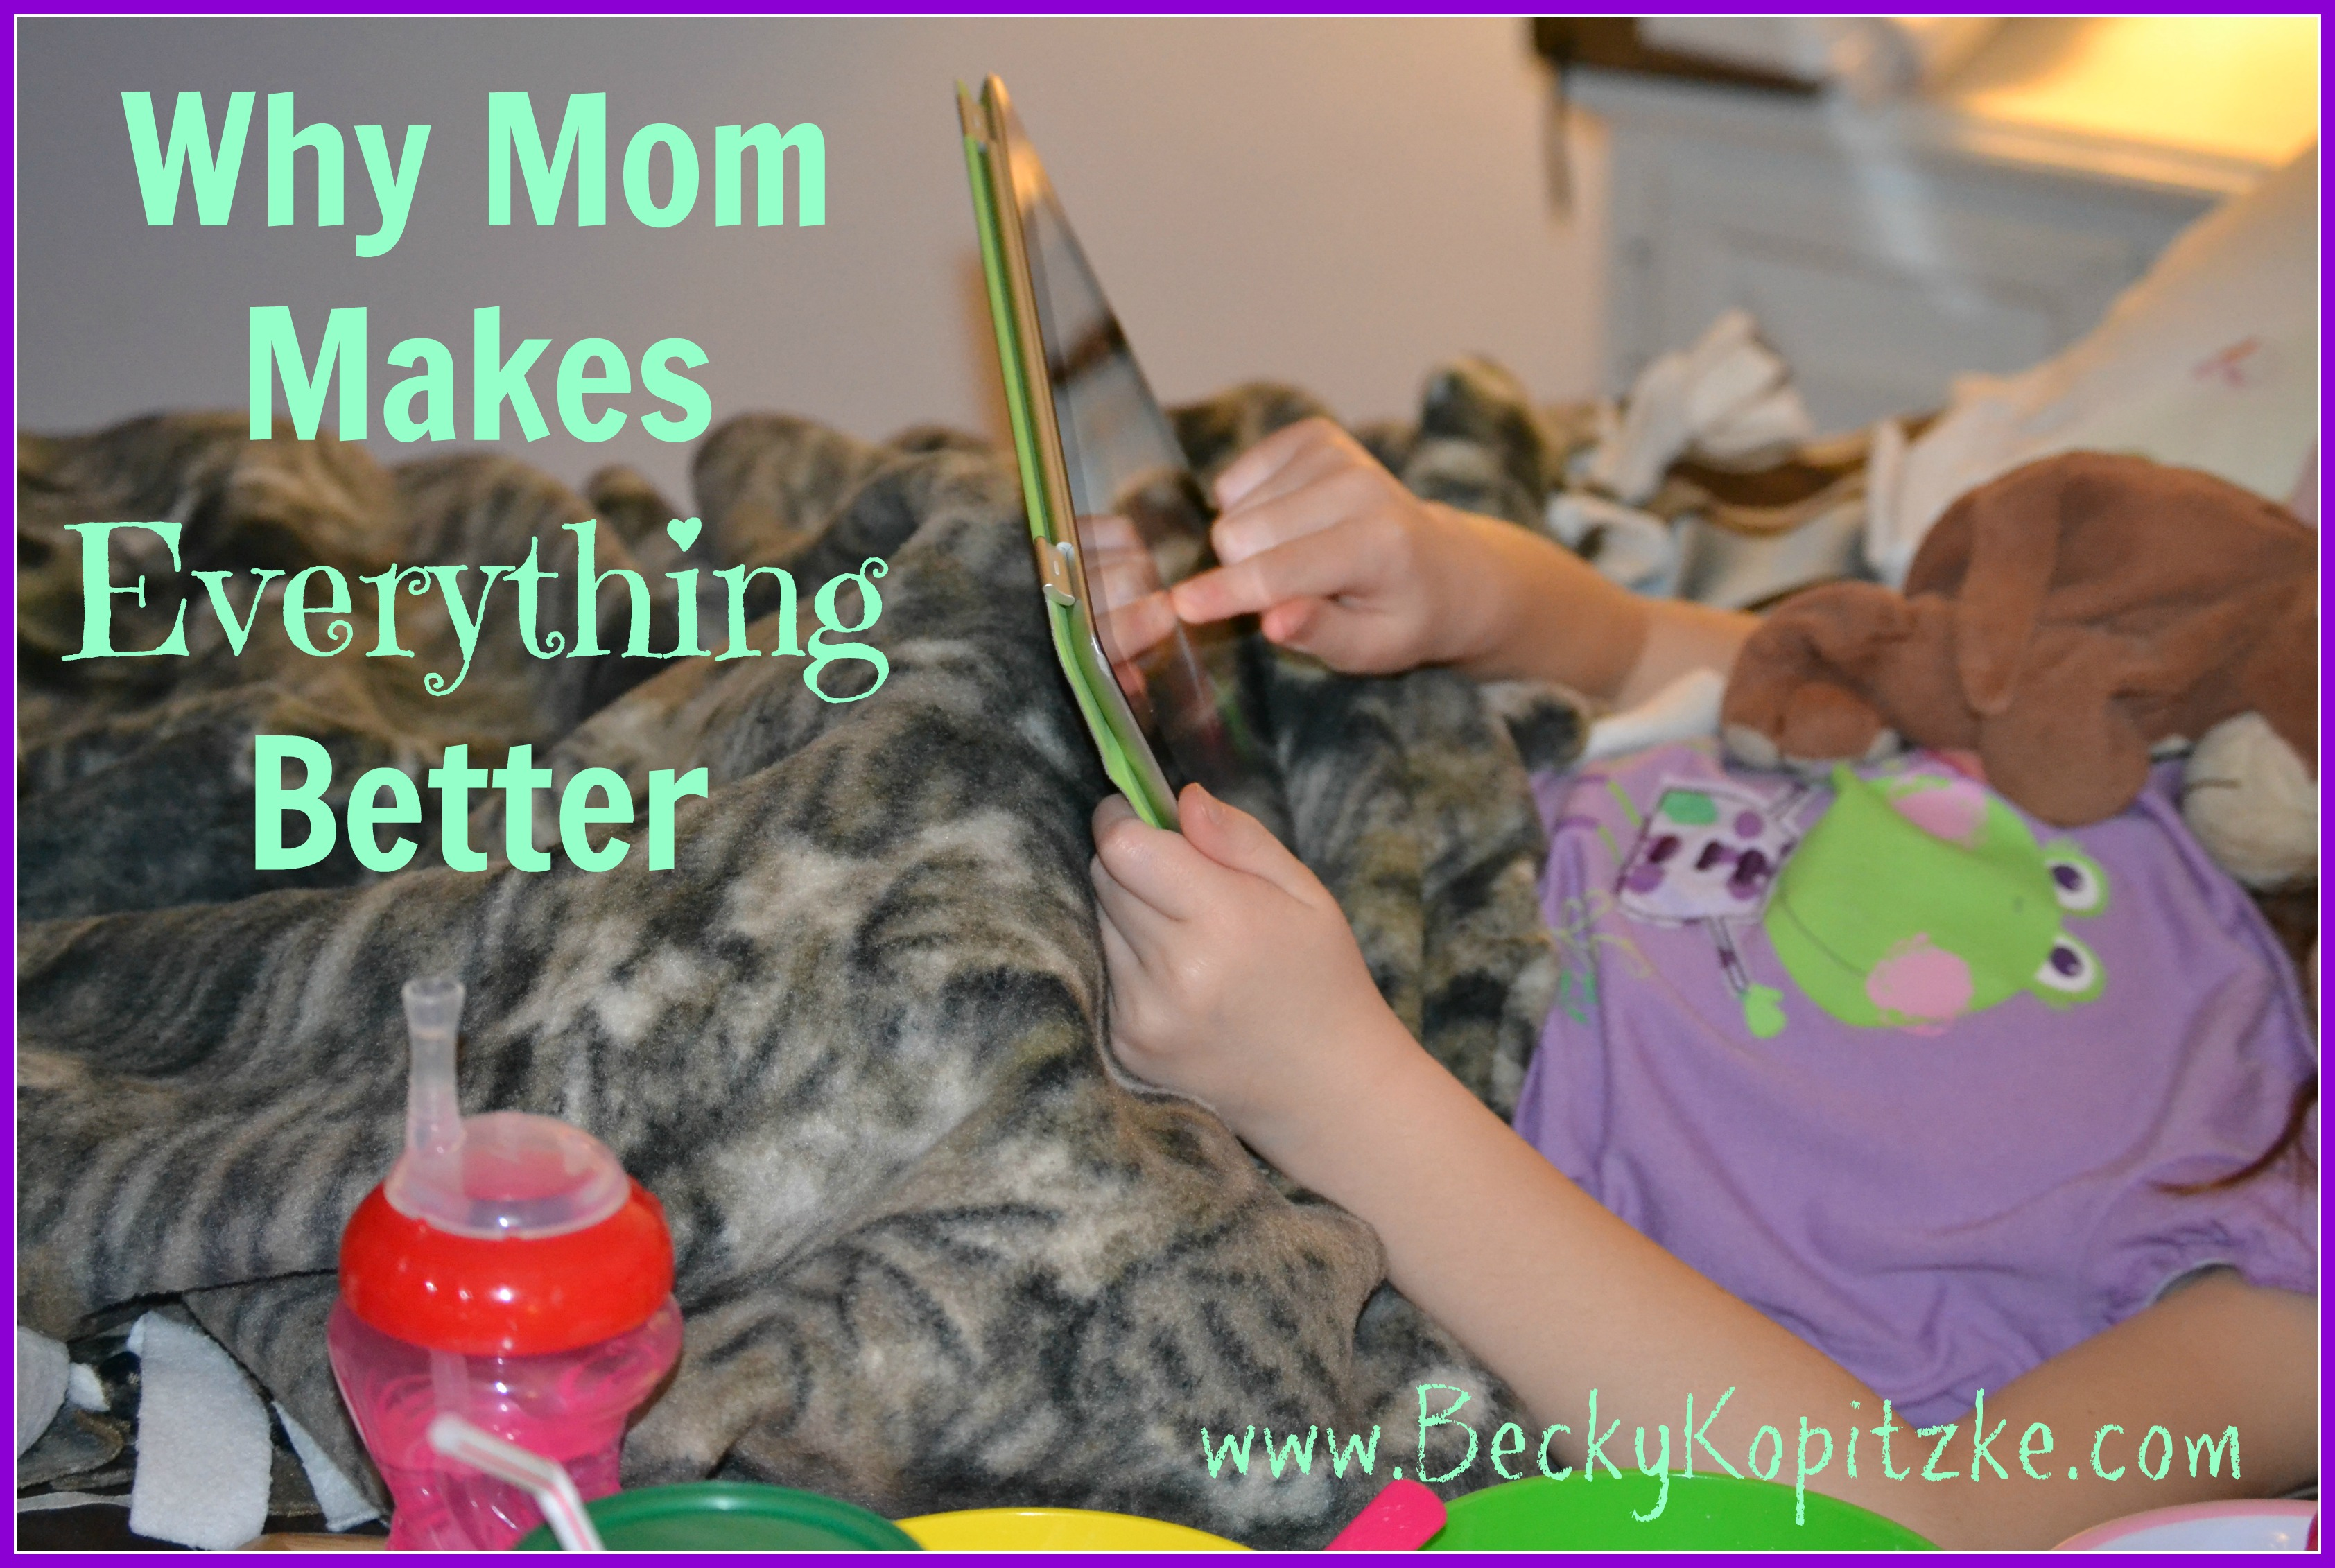 Why Mom Makes Everything Better